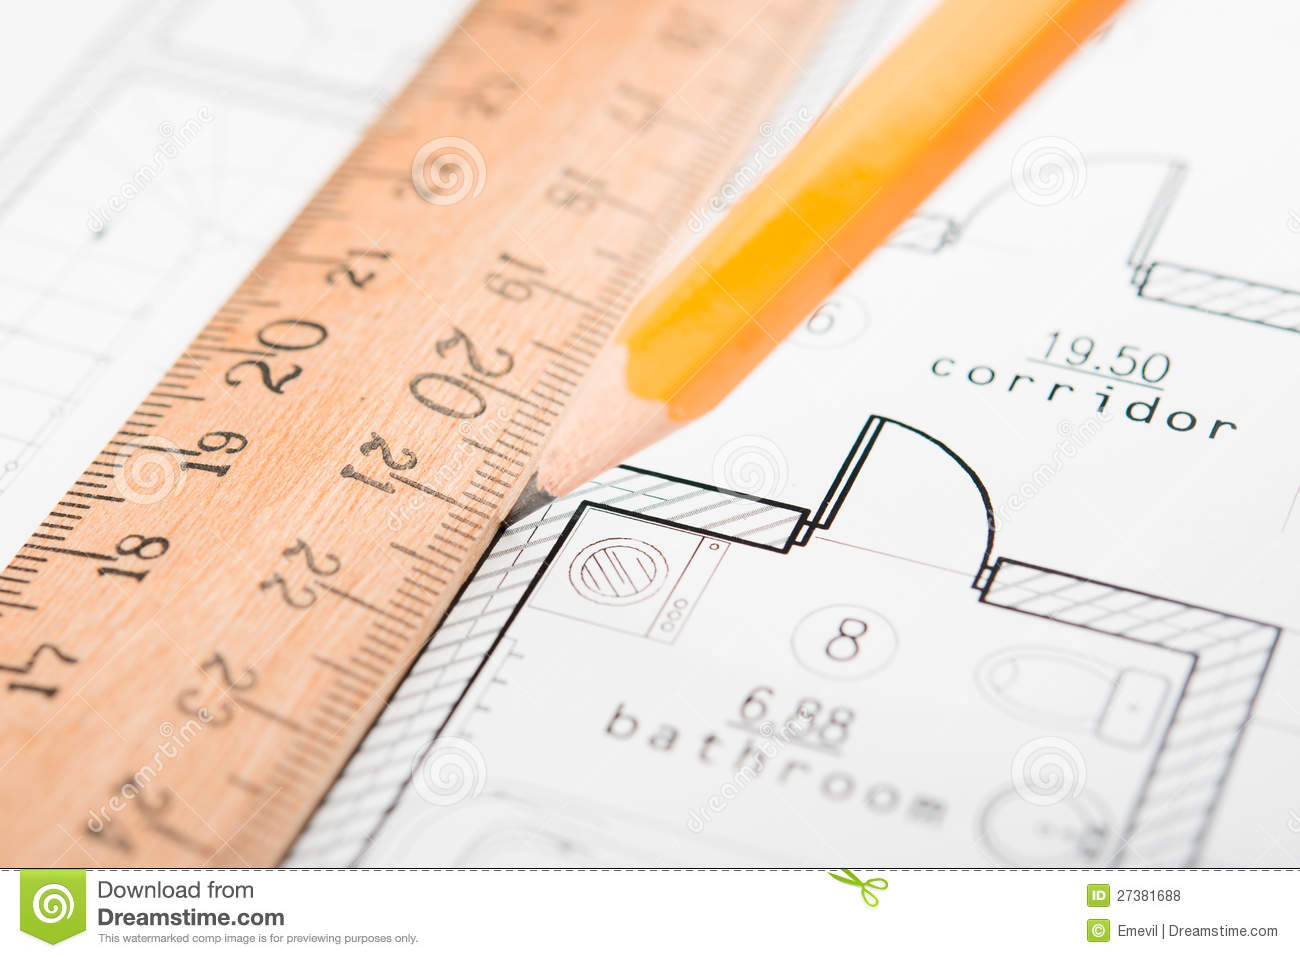 Drafting Tools Royalty Free Stock Photos Image 27381688